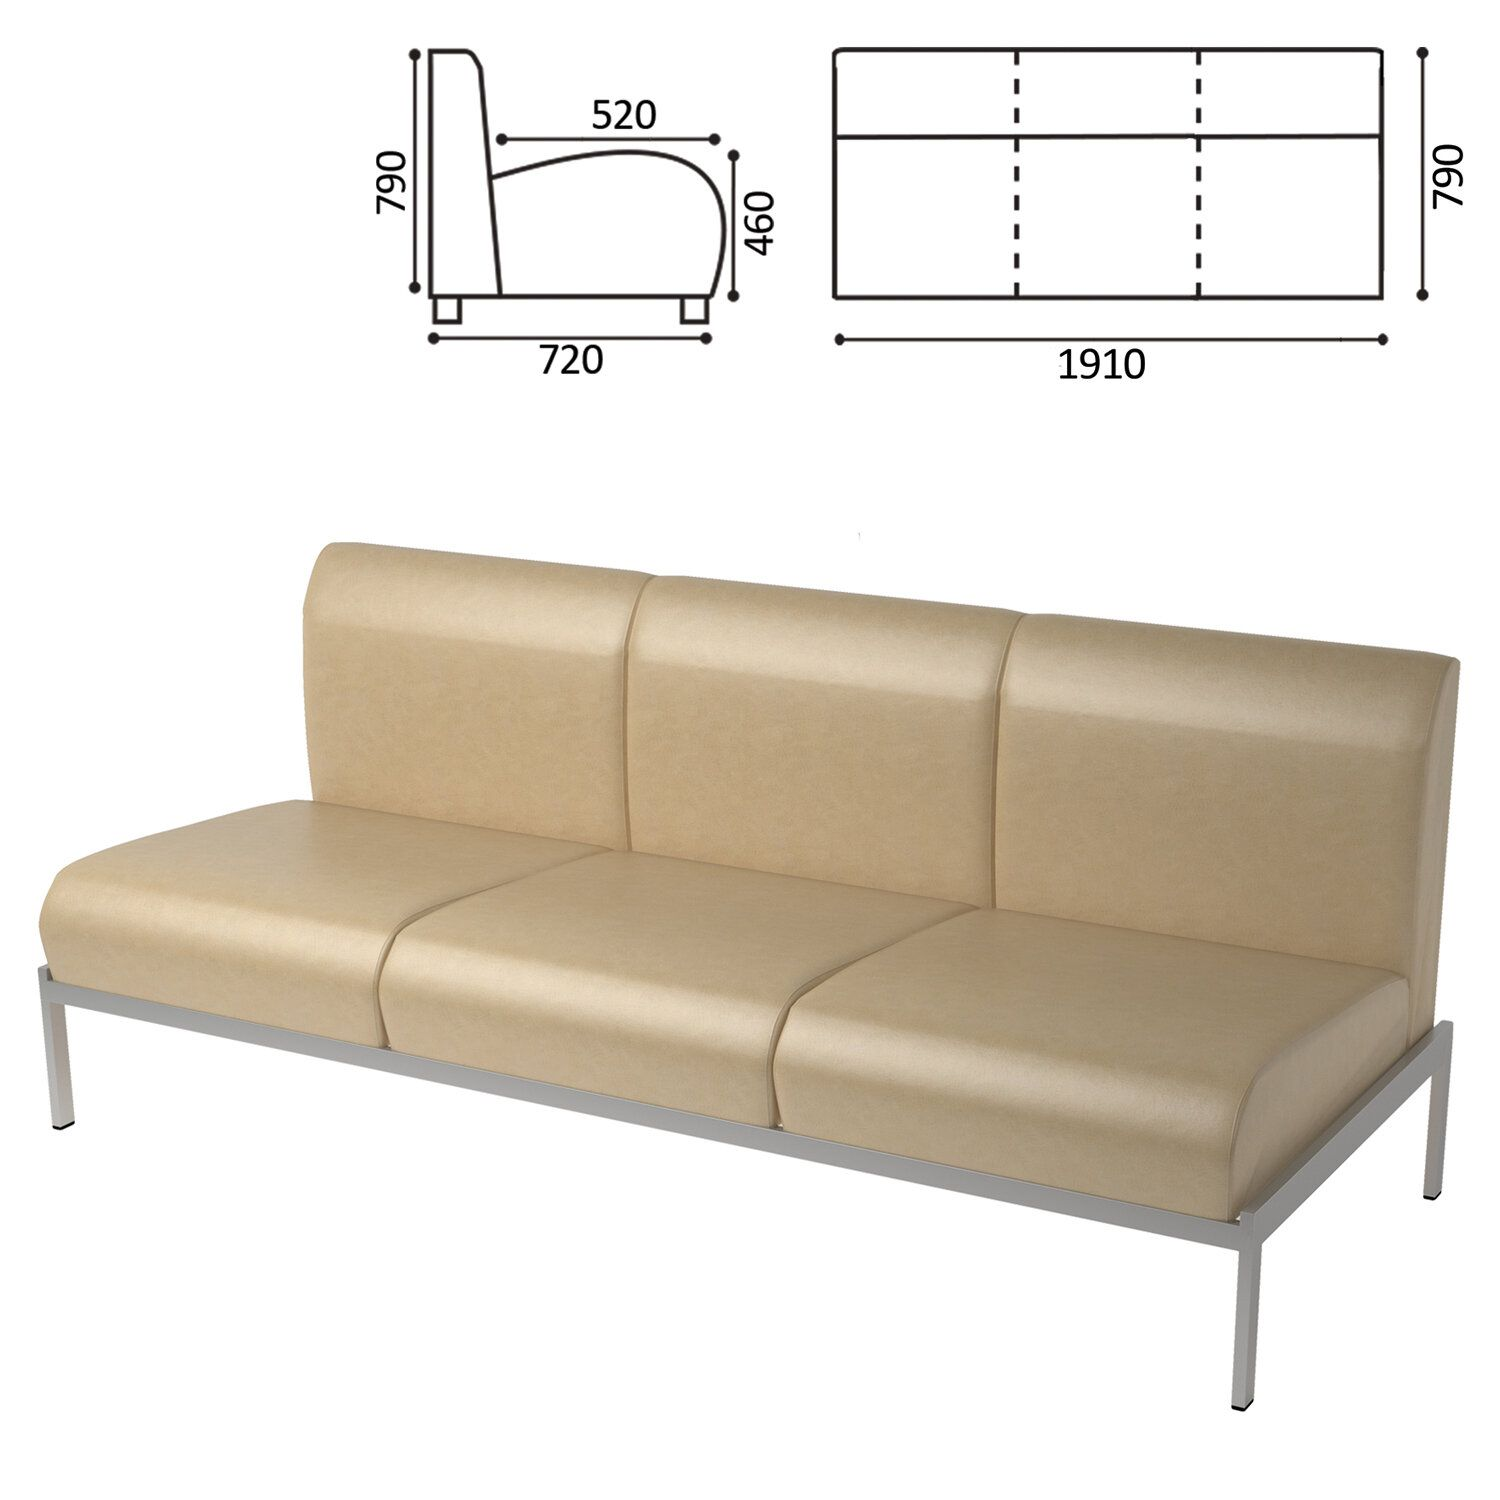 """COMFORUM / Soft three-seater sofa """"Dylan"""" D-22, 1910x720x790 mm, without armrests, leatherette, beige"""